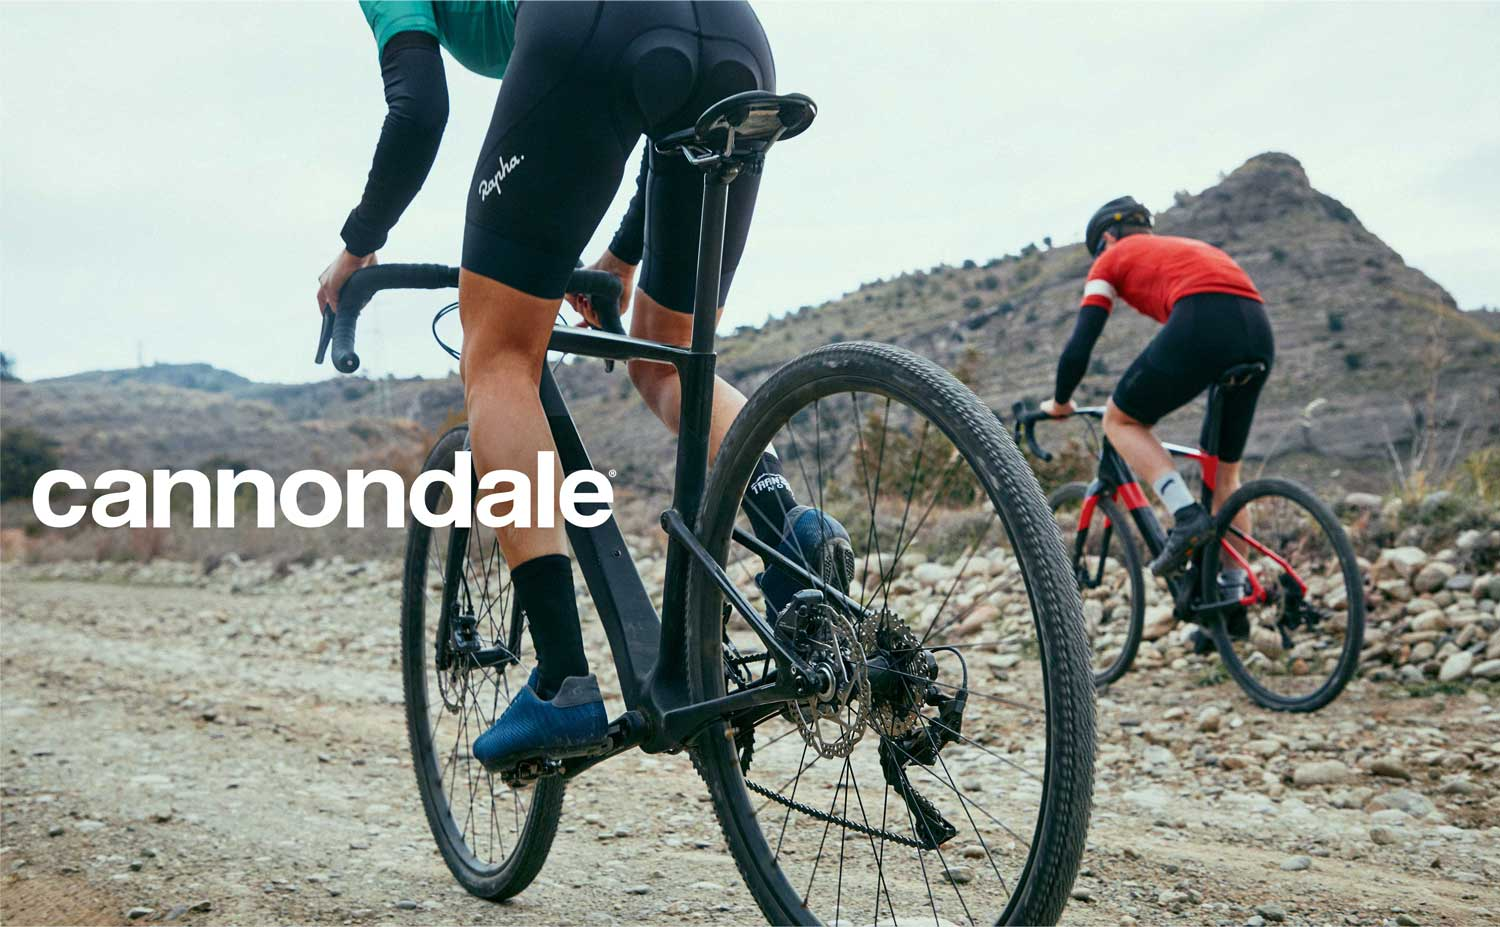 Cannondale Bikes At the Bicycle Pro Shop